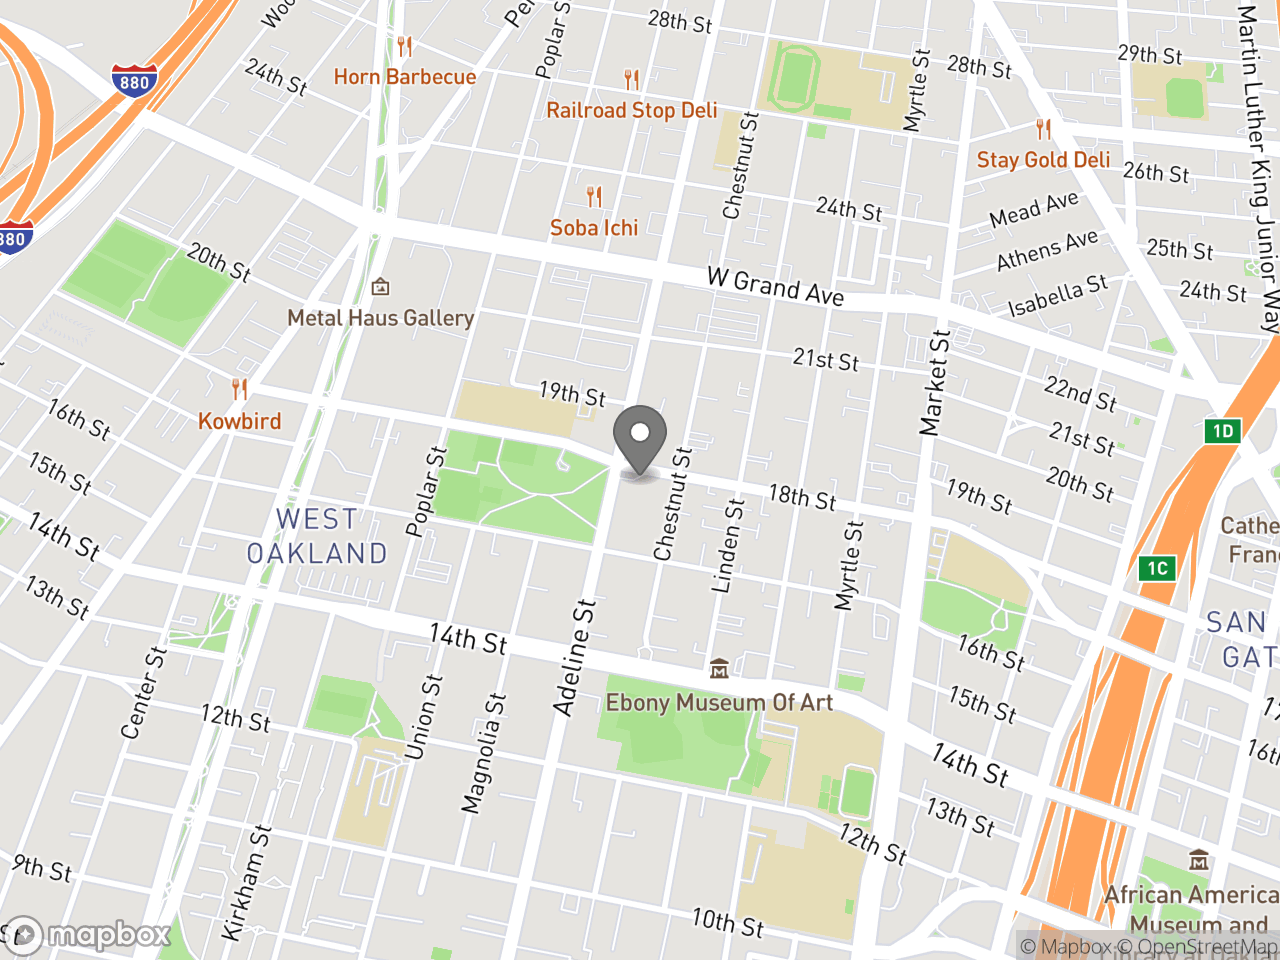 Map location for Sewing Classes at West Oakland Senior Center, located at 1724 Adeline St in Oakland, CA 94607